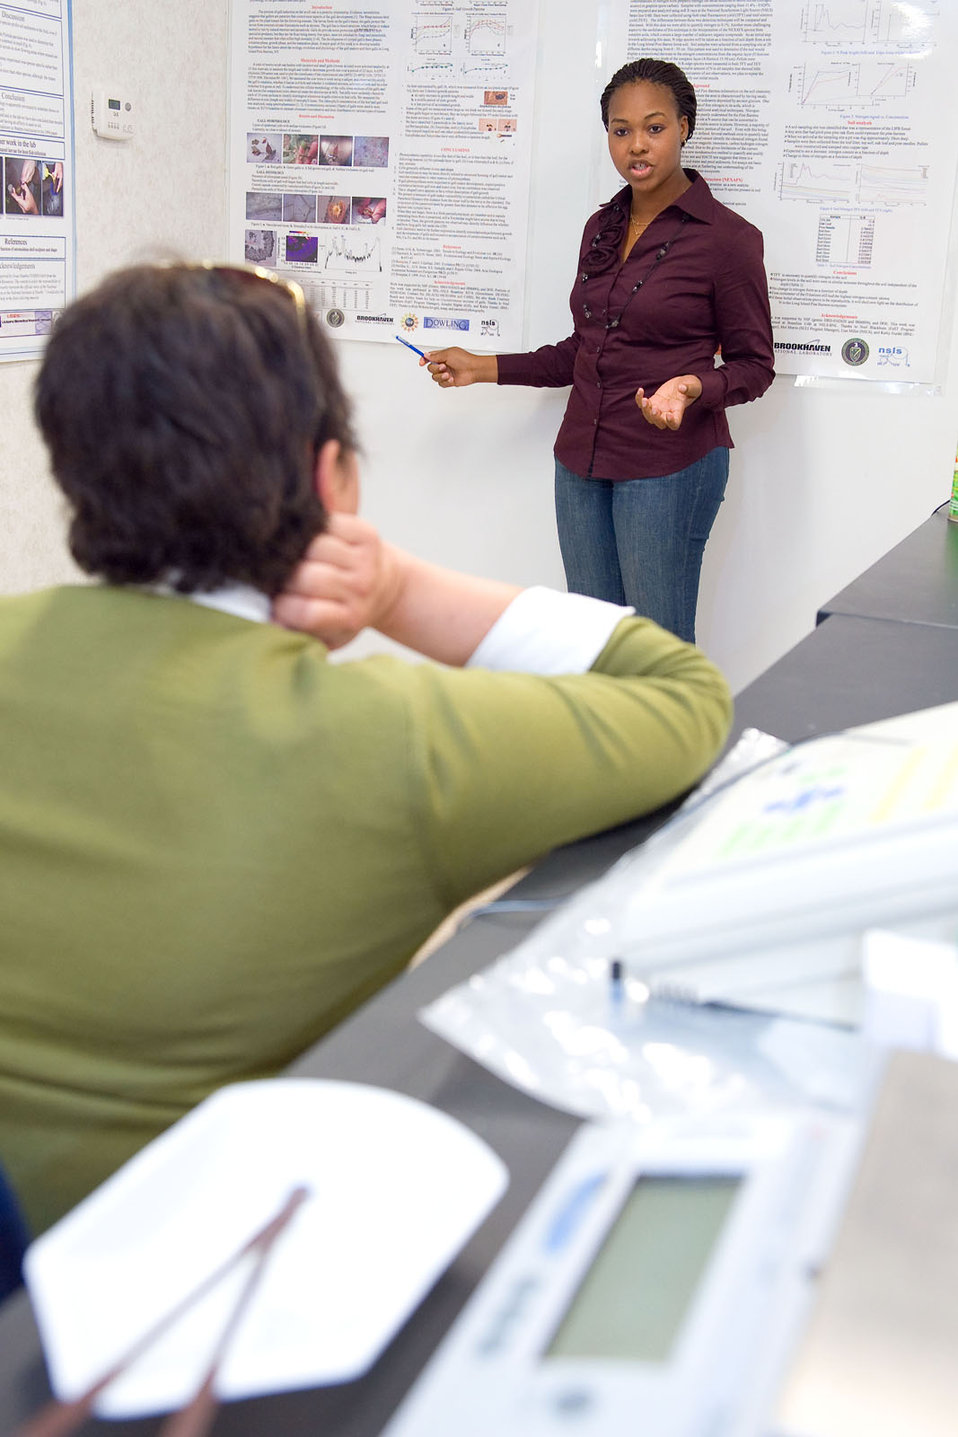 November, 2009 EPA Administrator Lisa Jackson learns about student projects firsthand